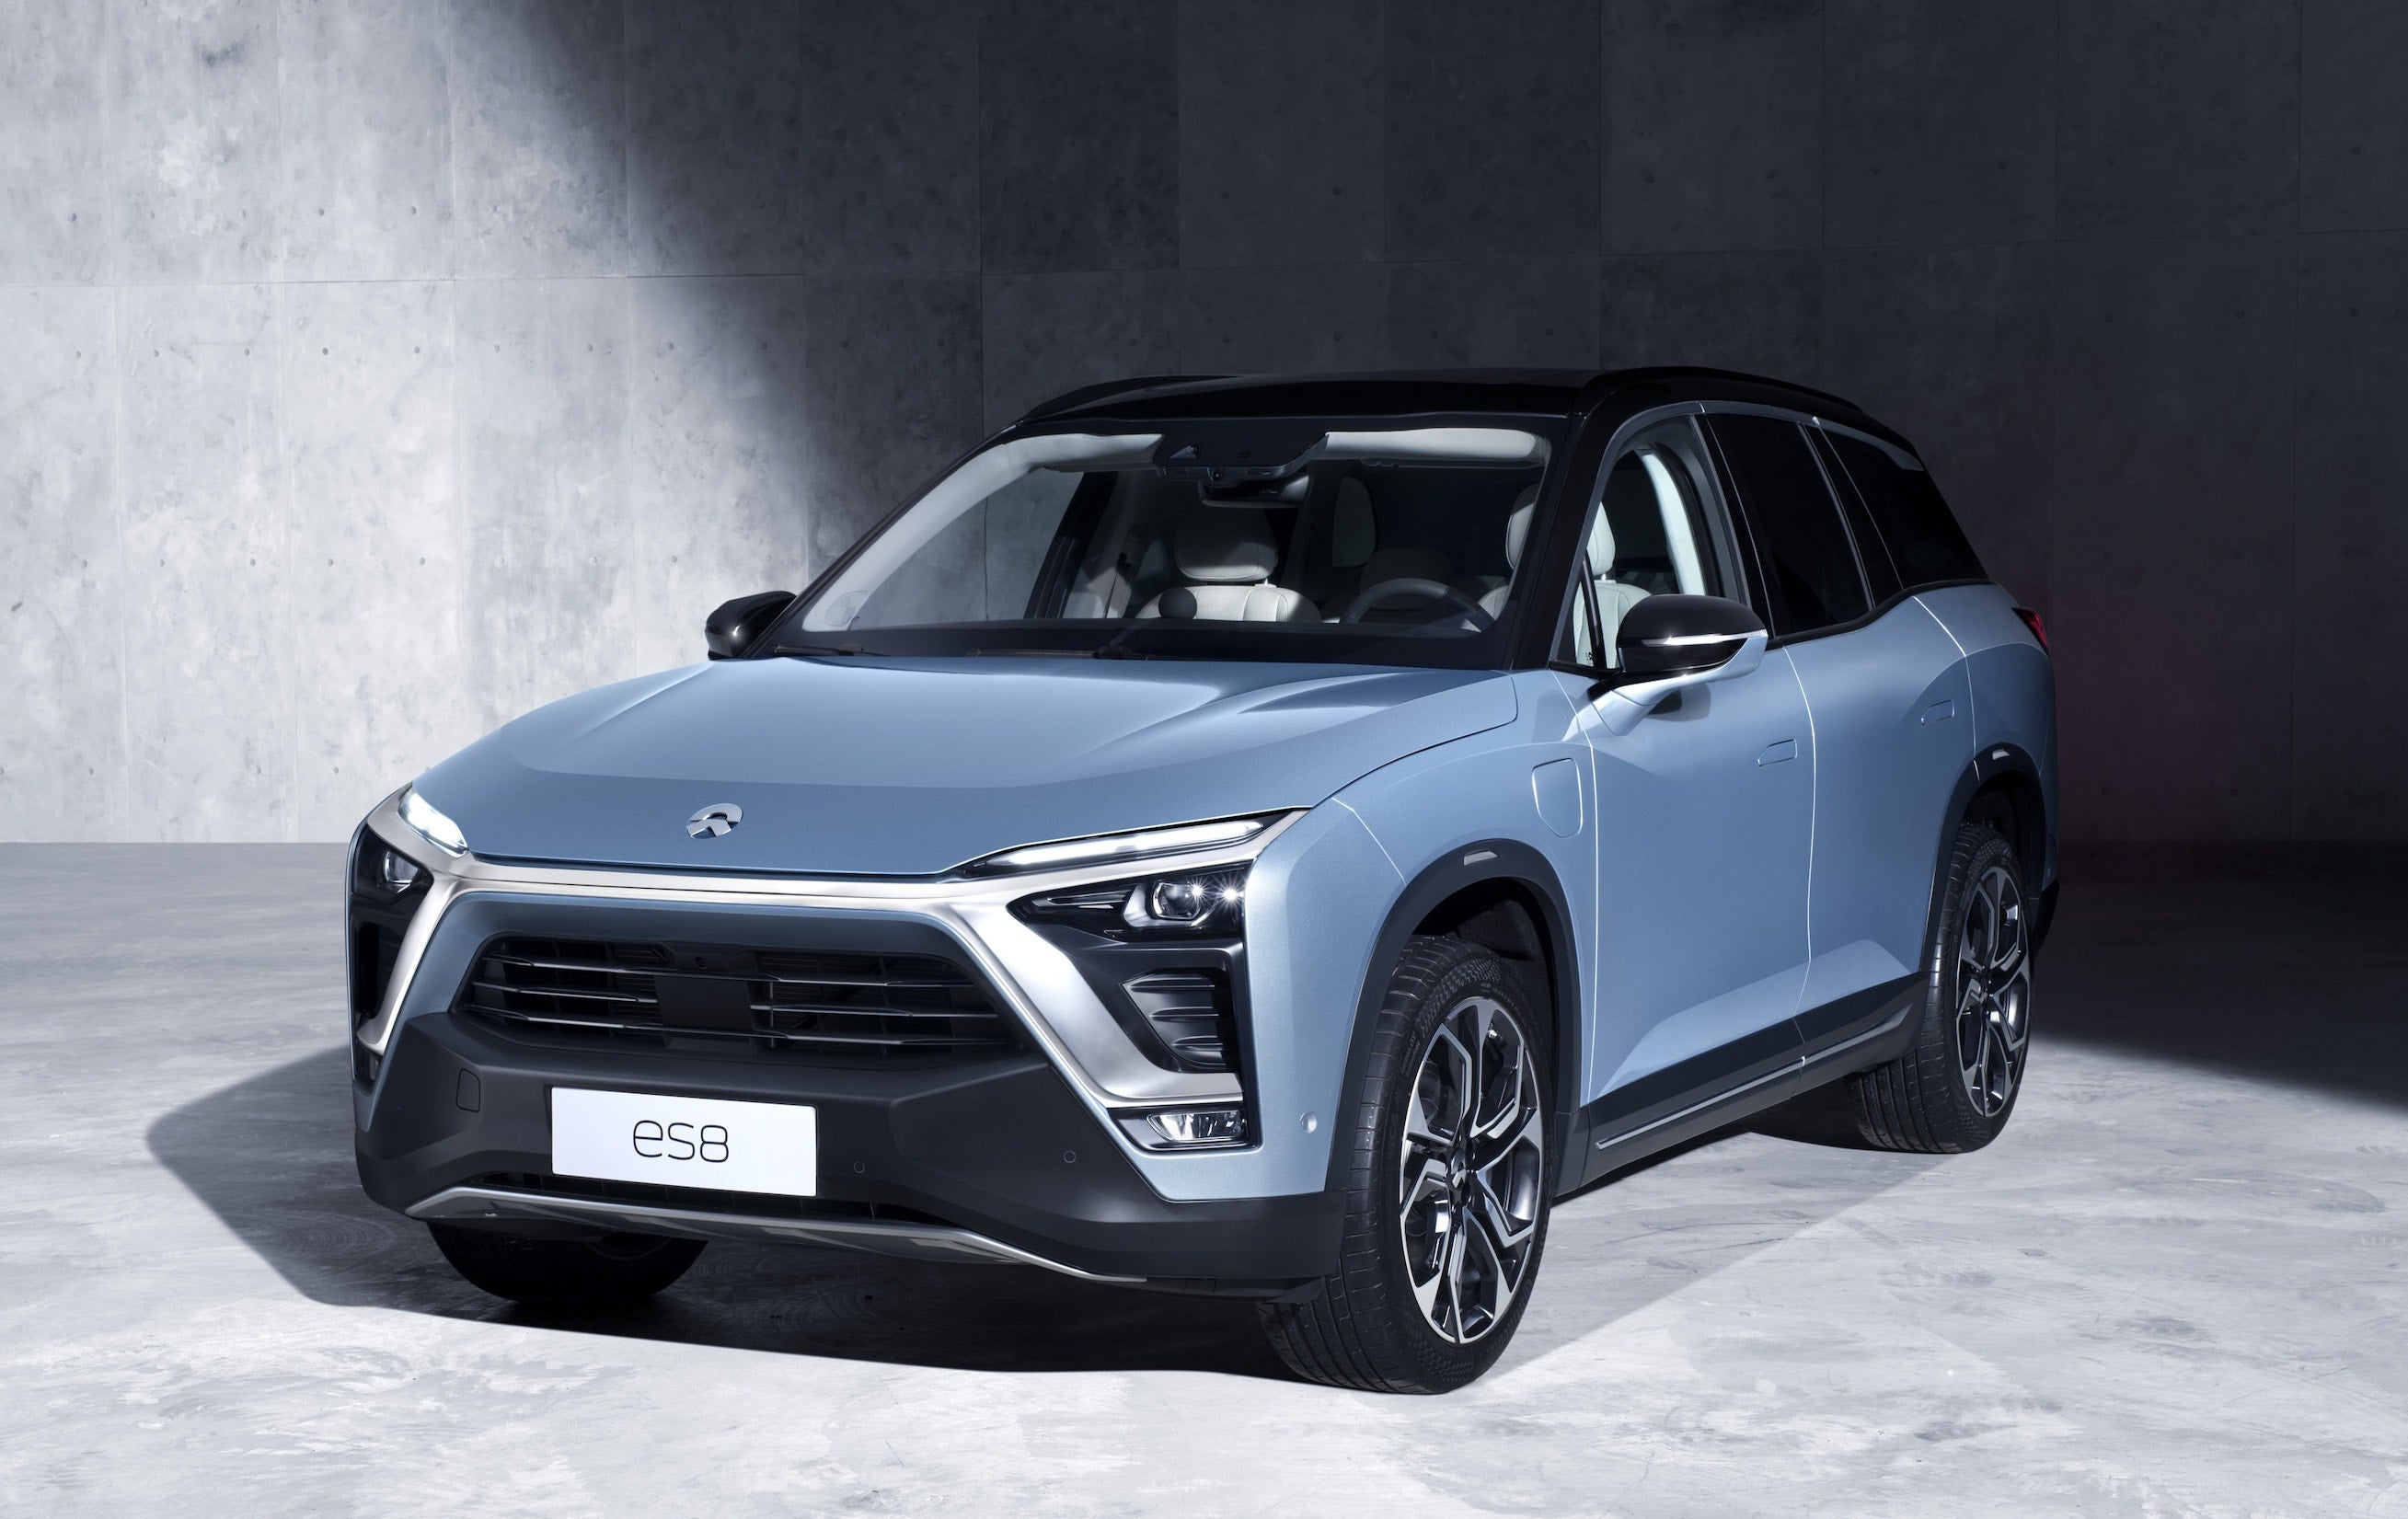 Why Shares Of Chinese Electric Car Maker Nio Fell 47 In March The Motley Fool